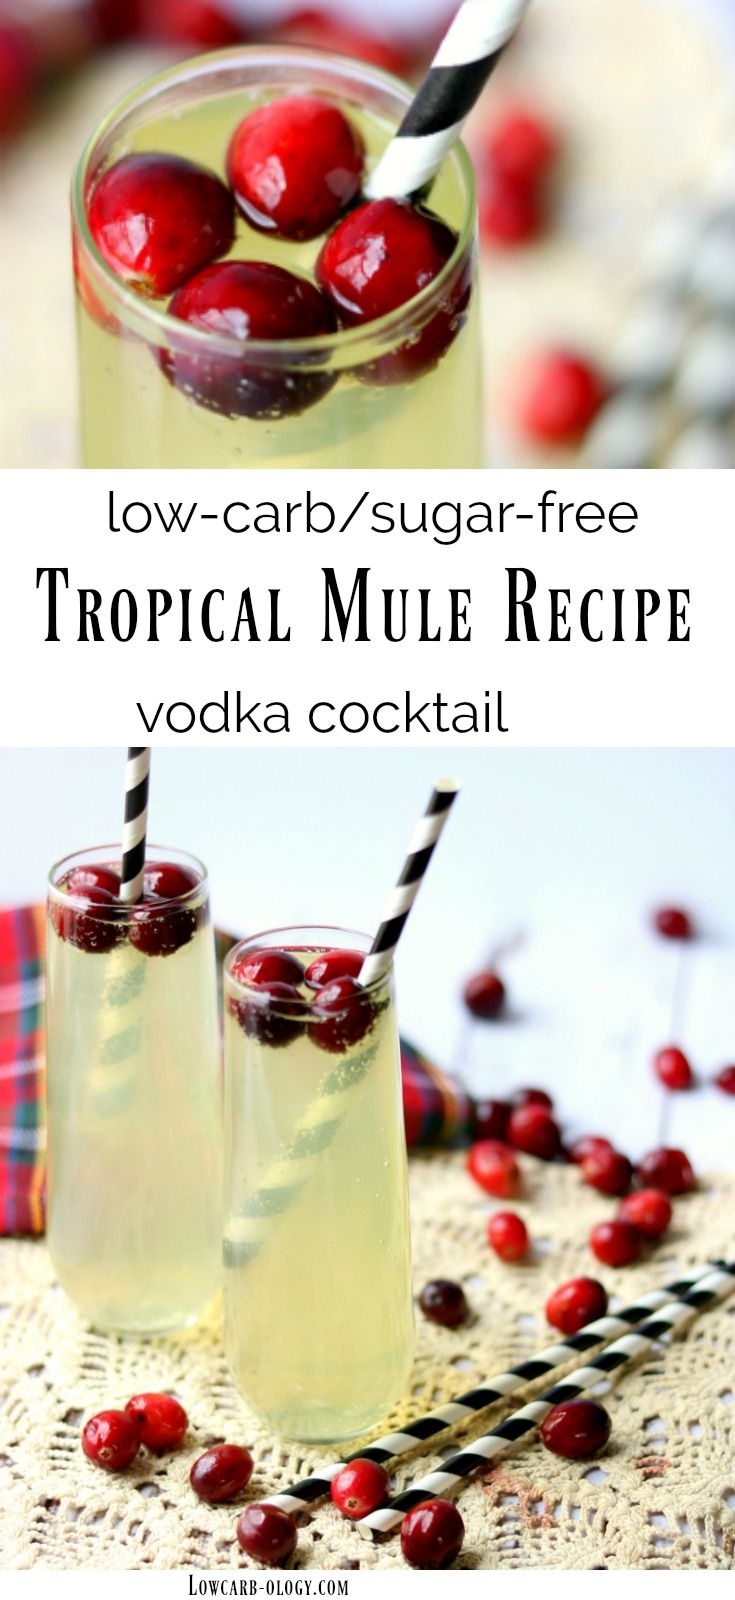 Low carb tropical mule recipe is made with vodka. Light and fizzy, this cocktail is full of coconut and pineapple flavor but has just 1 carb and 135 calories per serving. #lowcarb #vodkacocktails from Lowcarb-ology.com